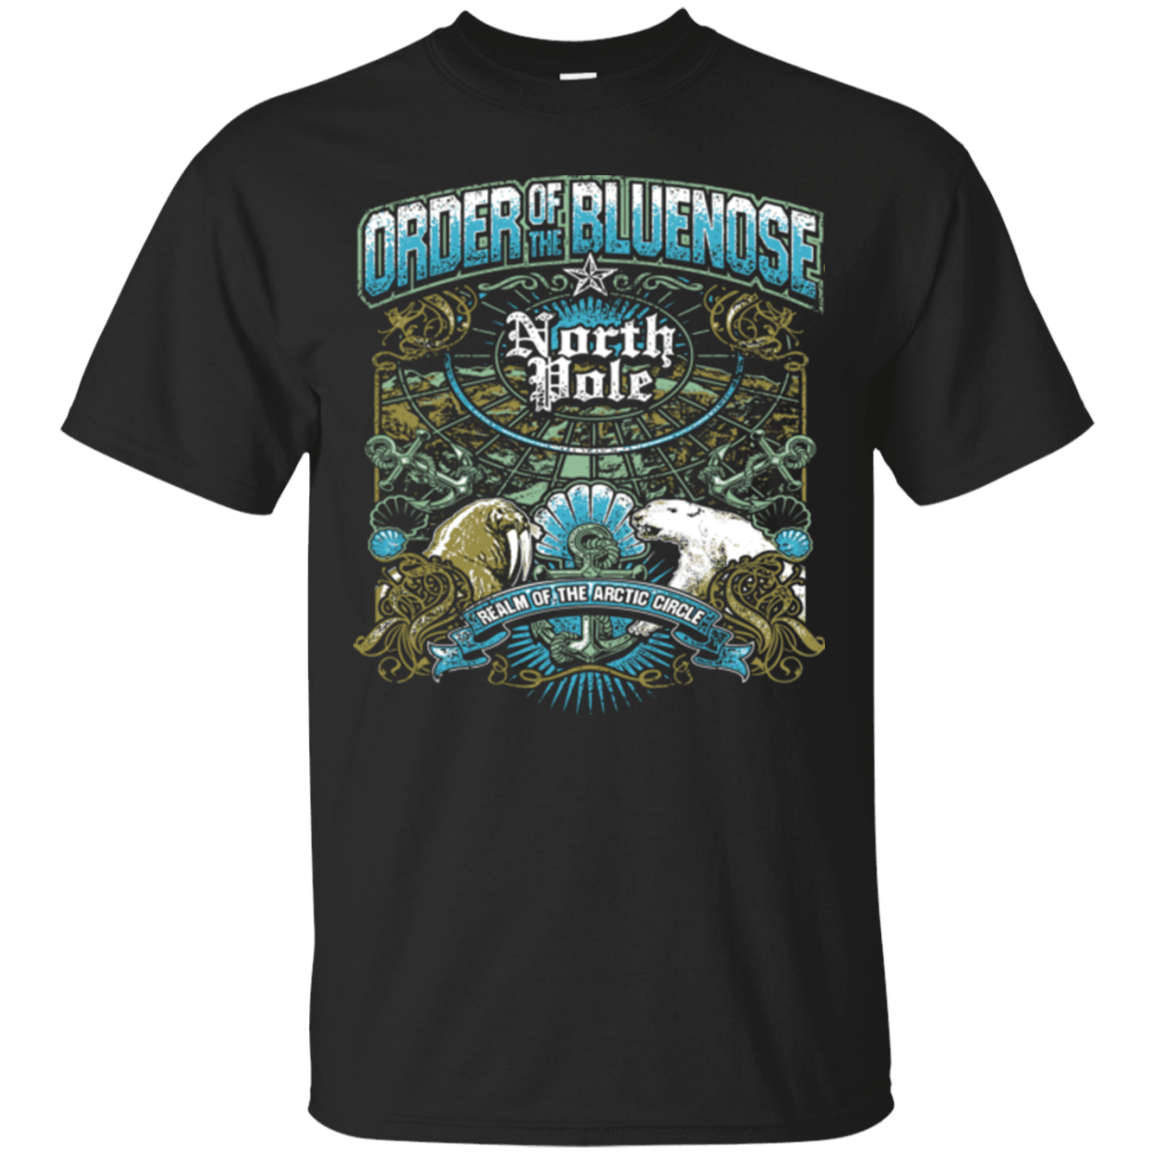 ORDER OF THE BLUE NOSE T Shirts and Hoodies